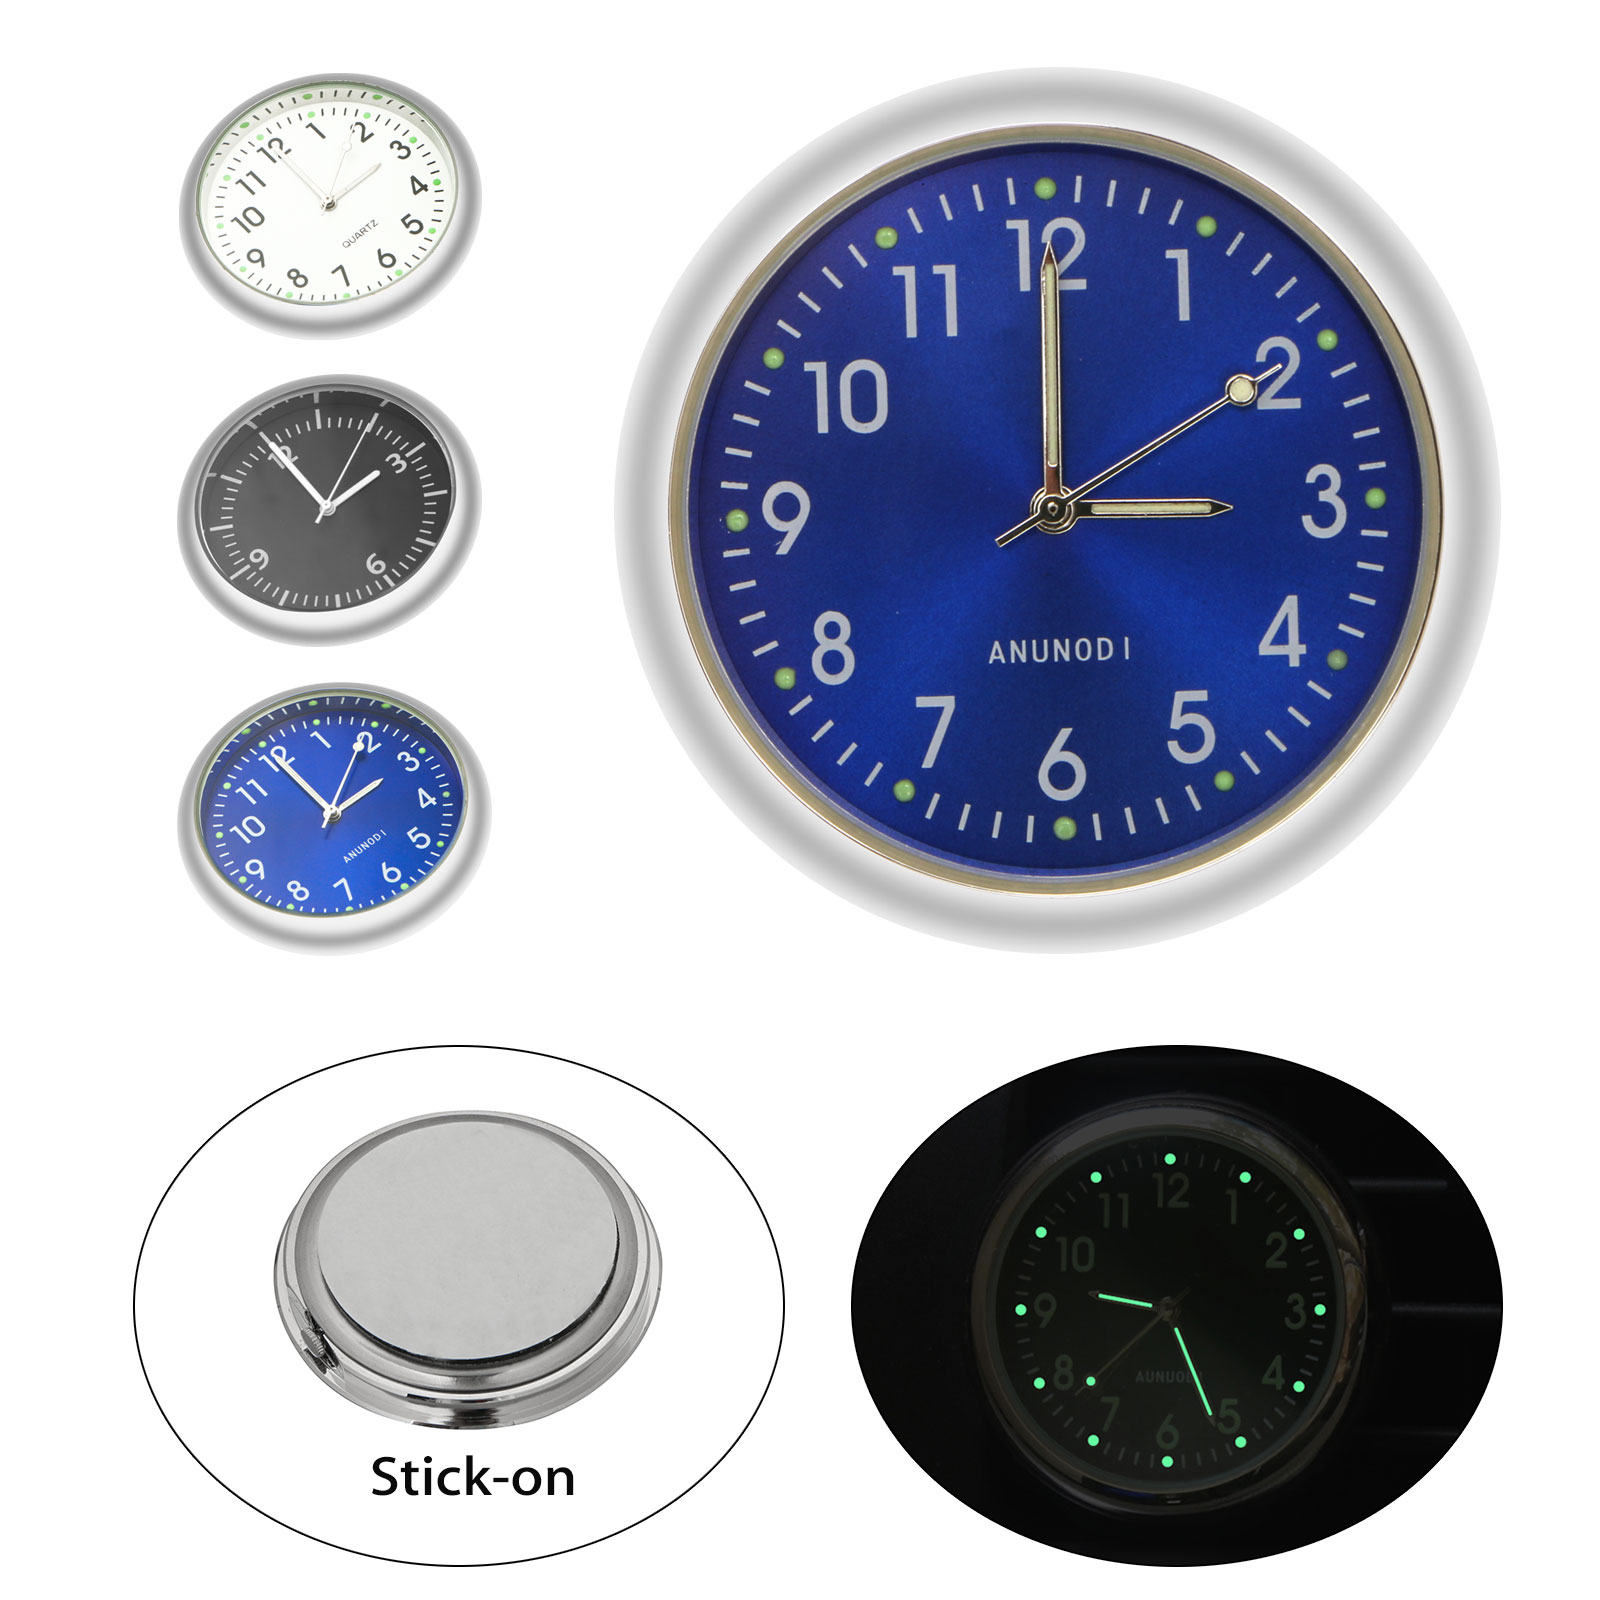 Universal Auto Interior Watch, EEEkit Mini Car Air Vent Clock, Luminous Pointer Digital Display with Stick-On for Car Home office